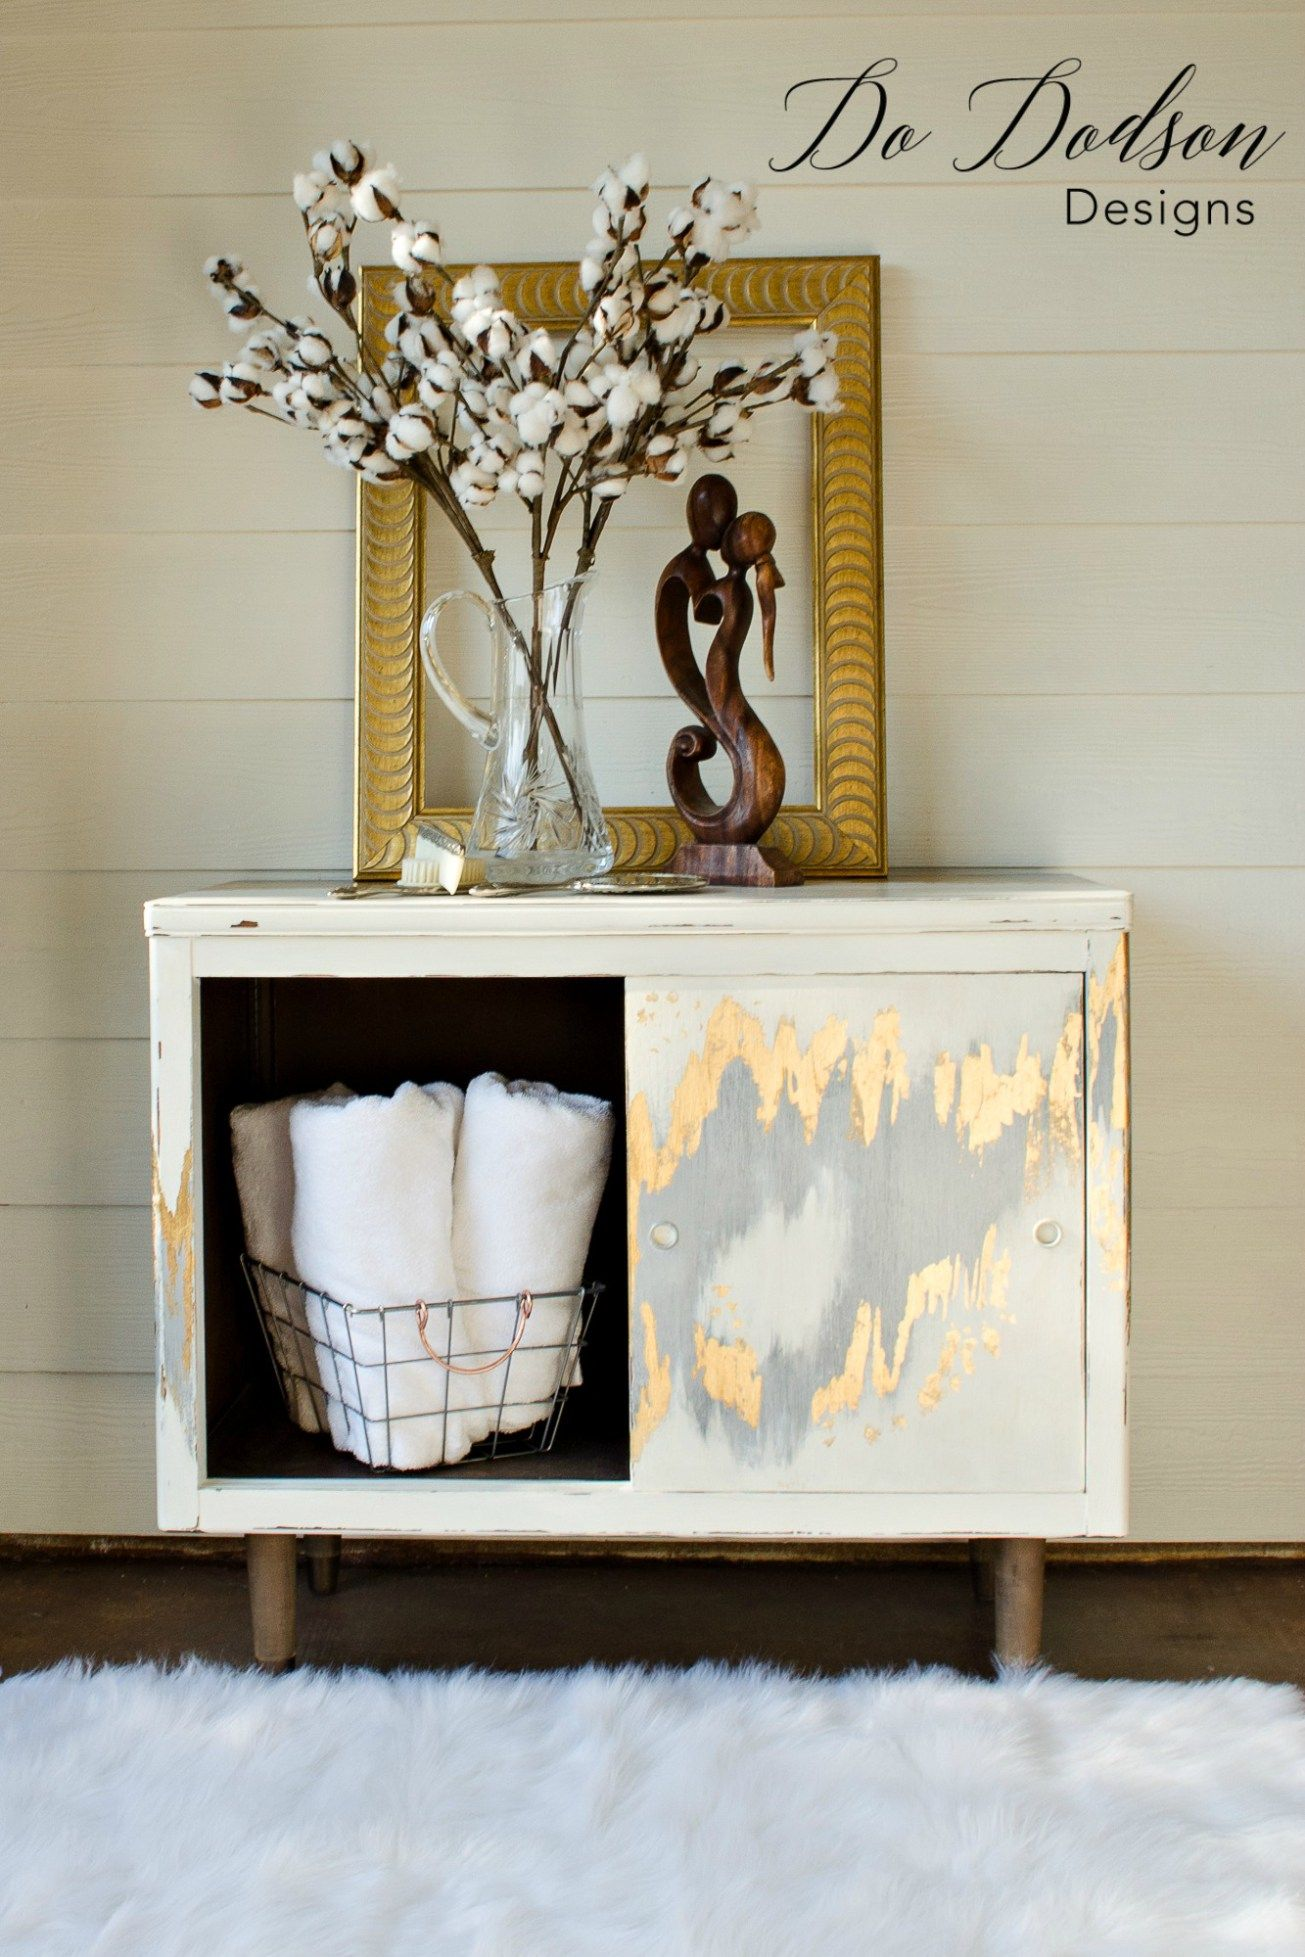 Metallic silver and gold leaf finish for furniture